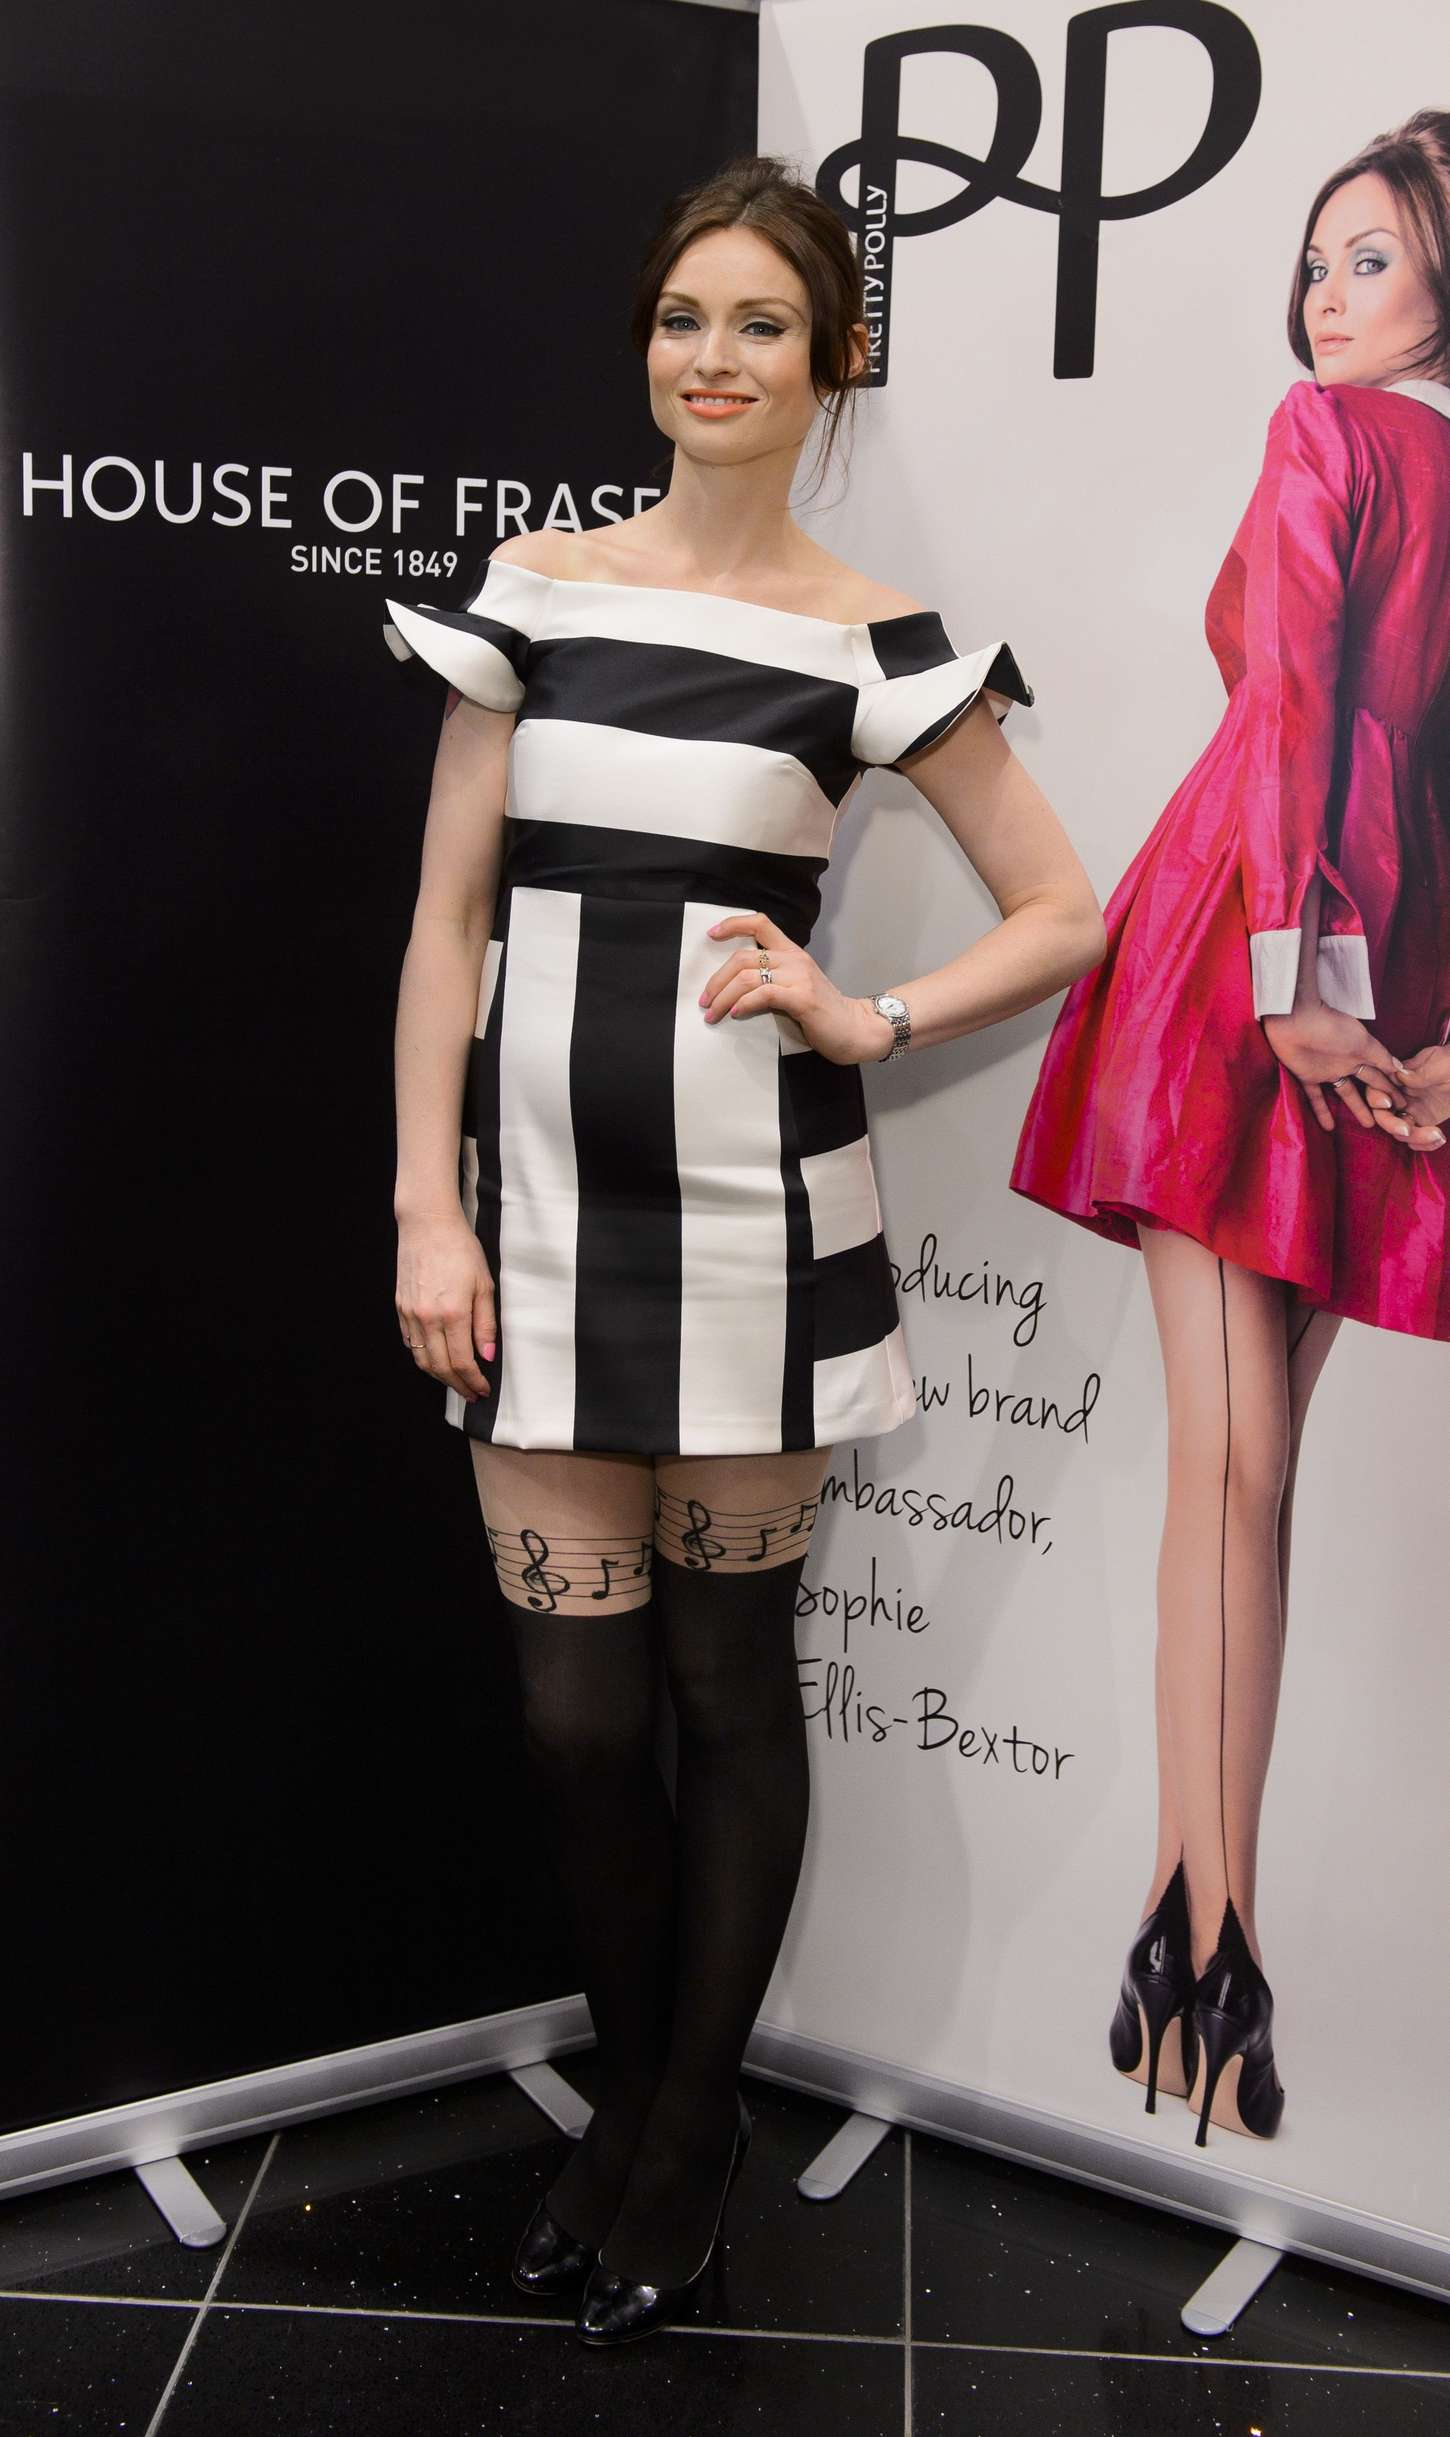 Sophie Ellis Bextor Pretty Polly Event at the House of Fraser in London